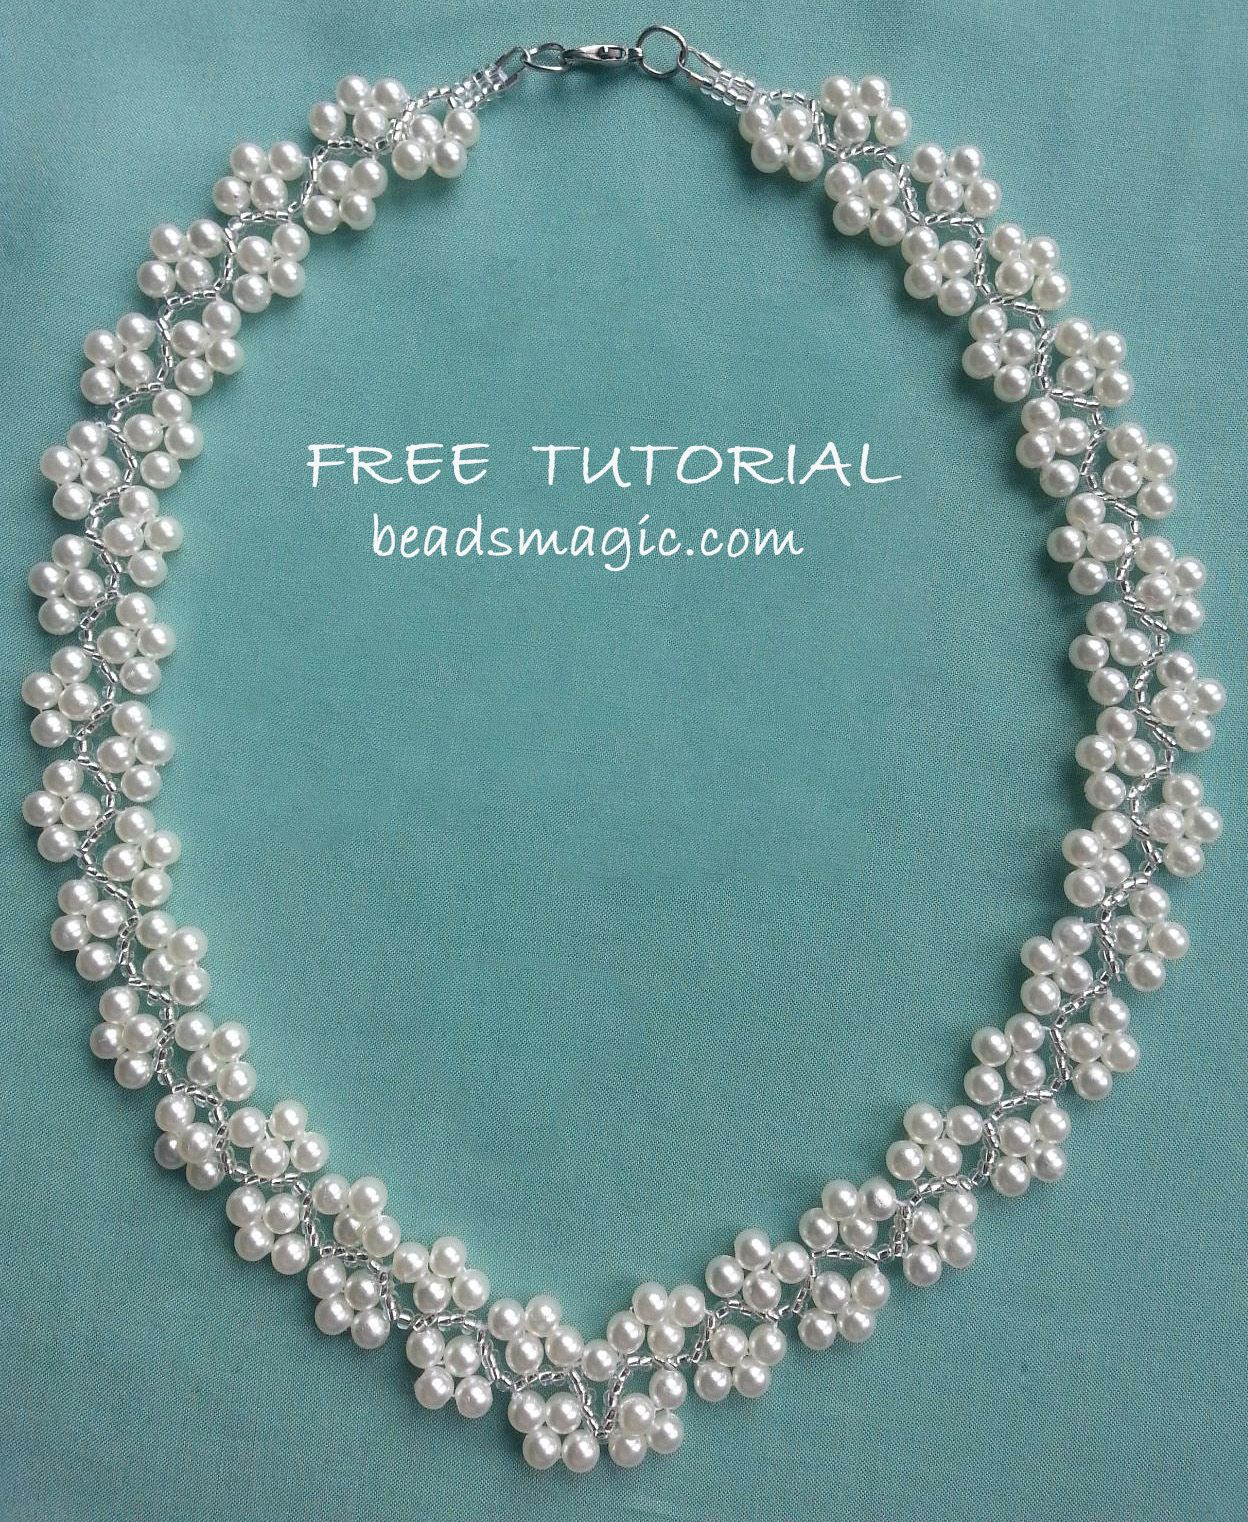 Free pattern for necklace Magnolia